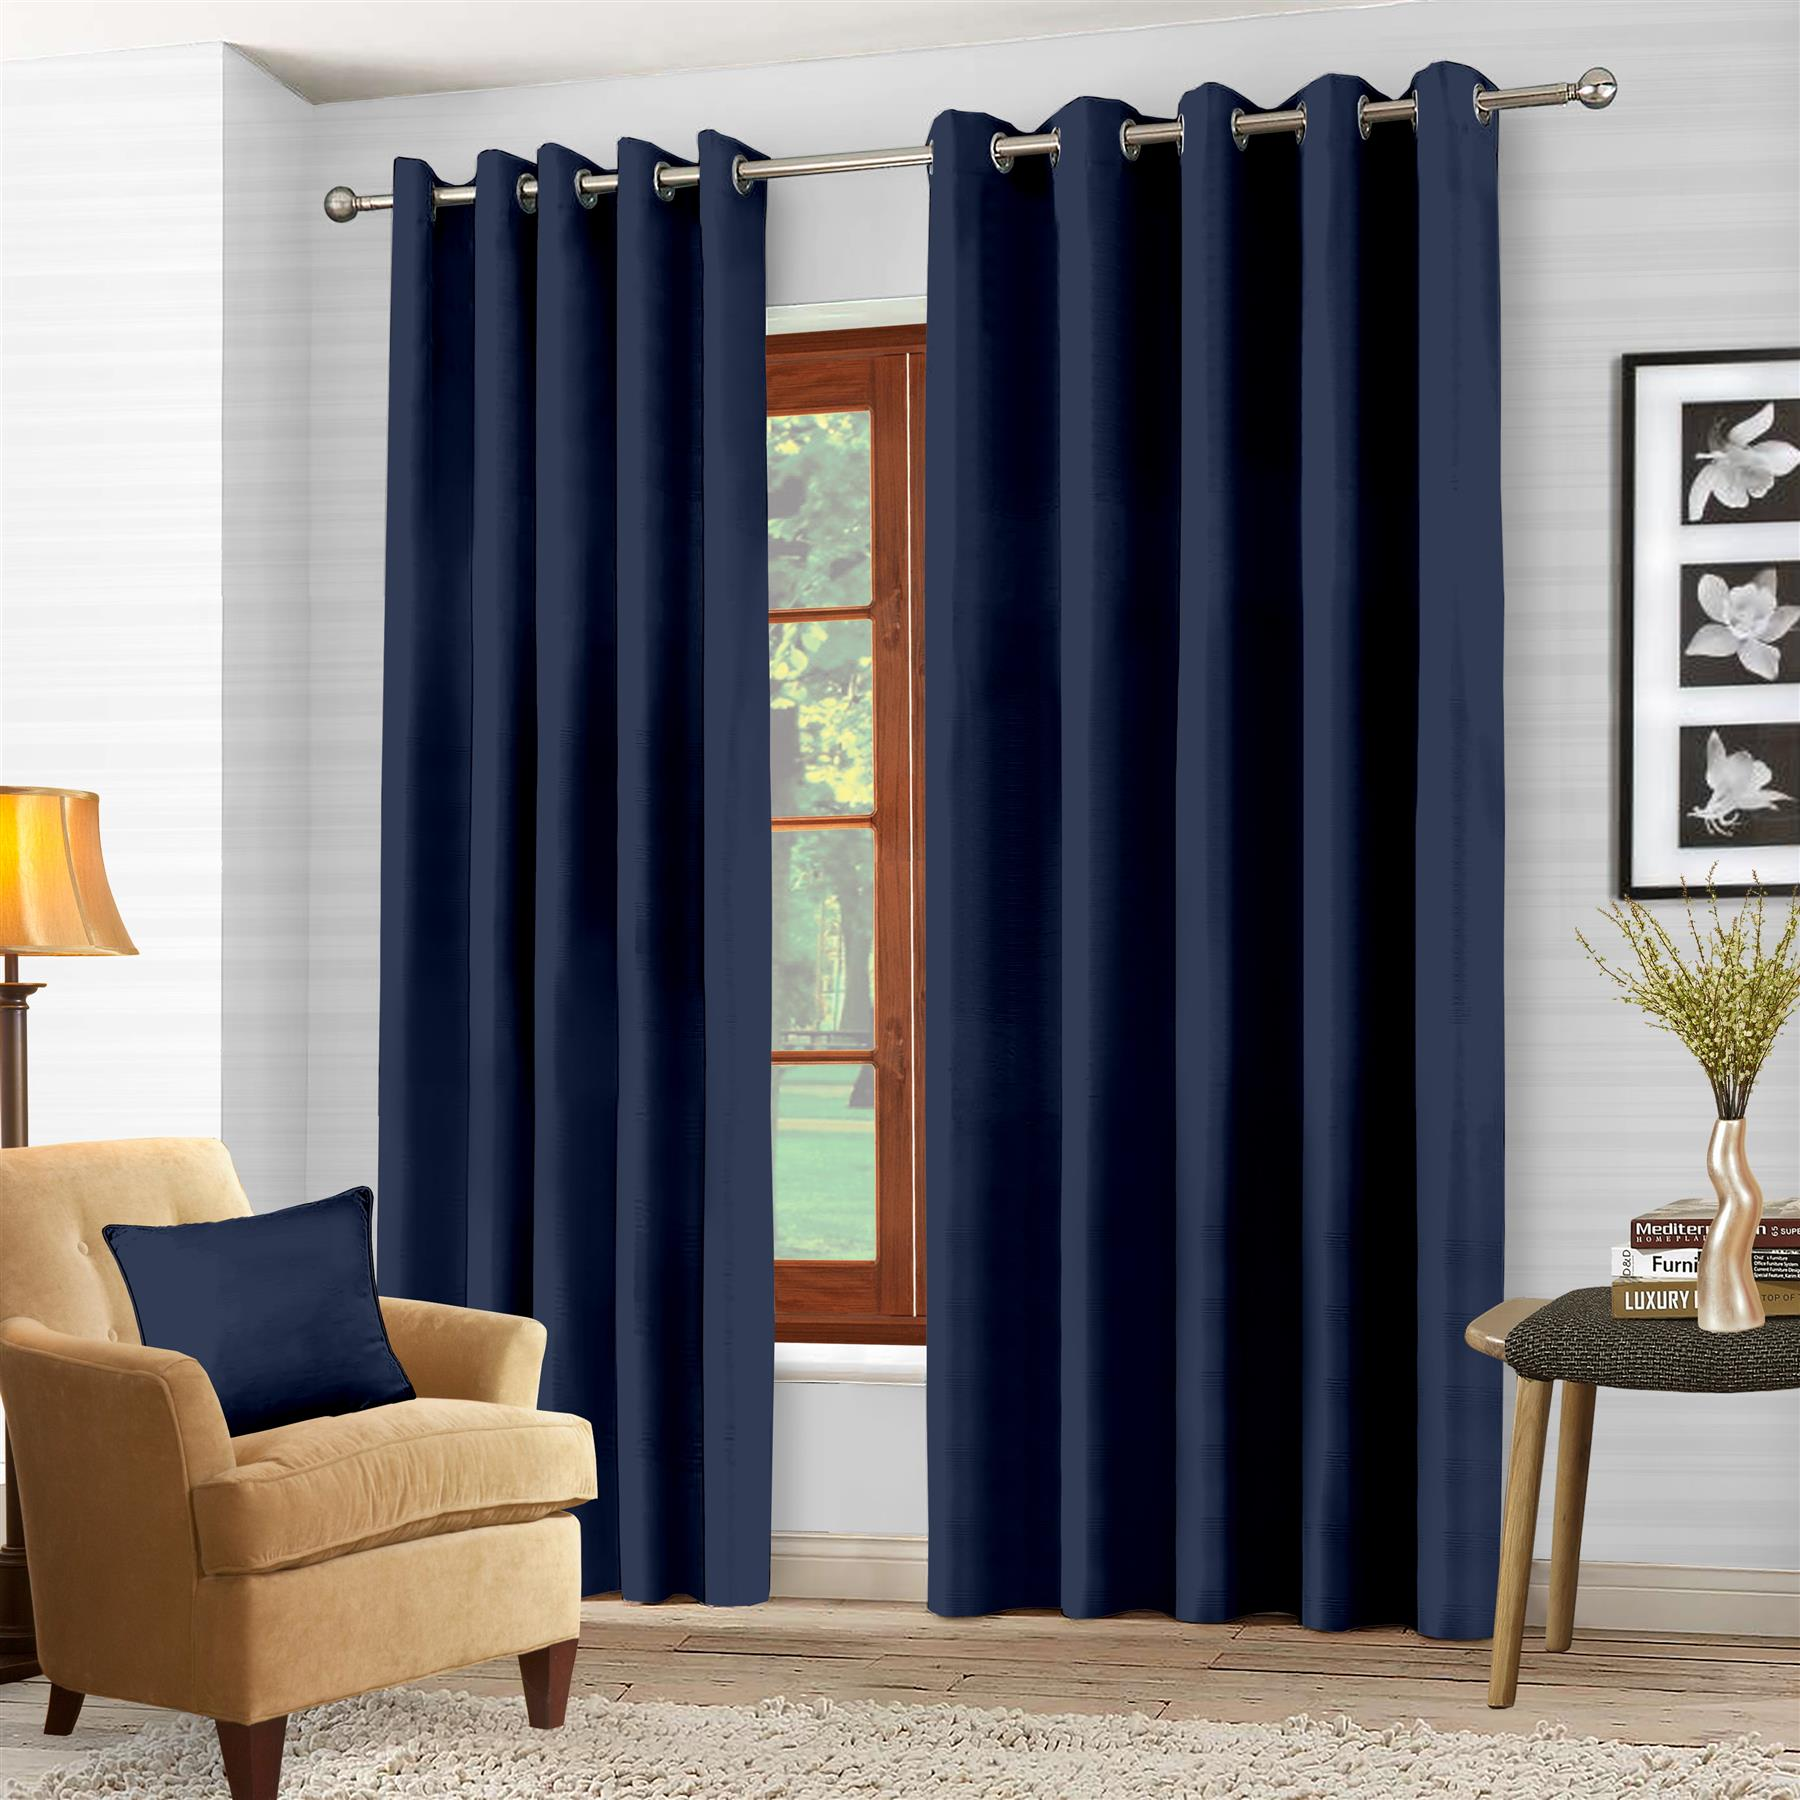 Luxury-Thermal-Blackout-Eyelet-Ring-Top-Curtains-Pair-with-tie-backs thumbnail 31